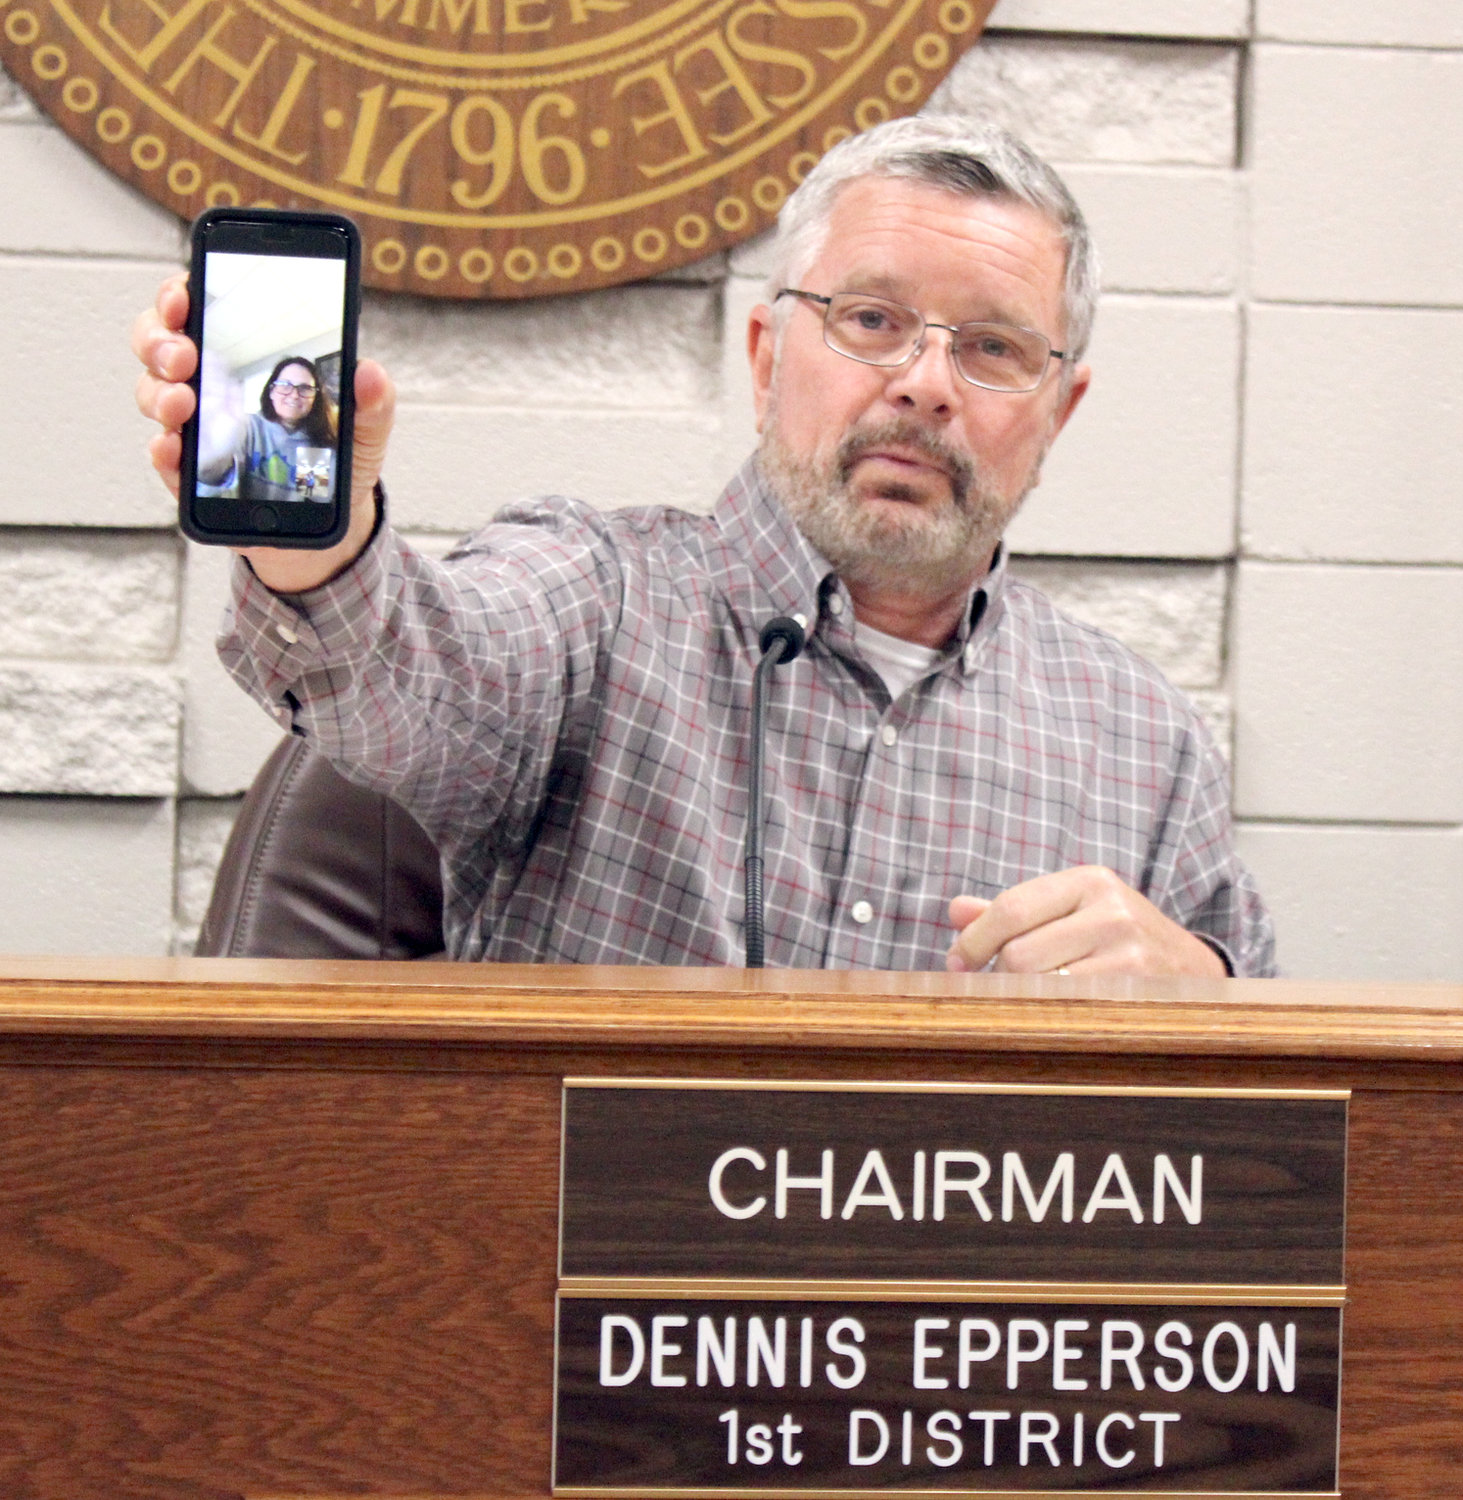 BRADLEY COUNTY Commissioner Charlotte Peak is shown waving on a smartphone screen held by IT Committee Chairman Dennis Epperson, during Monday's meeting. Peak later joined a call with three other commissioners on another smartphone, so everyone joining the meeting remotely could see each other.